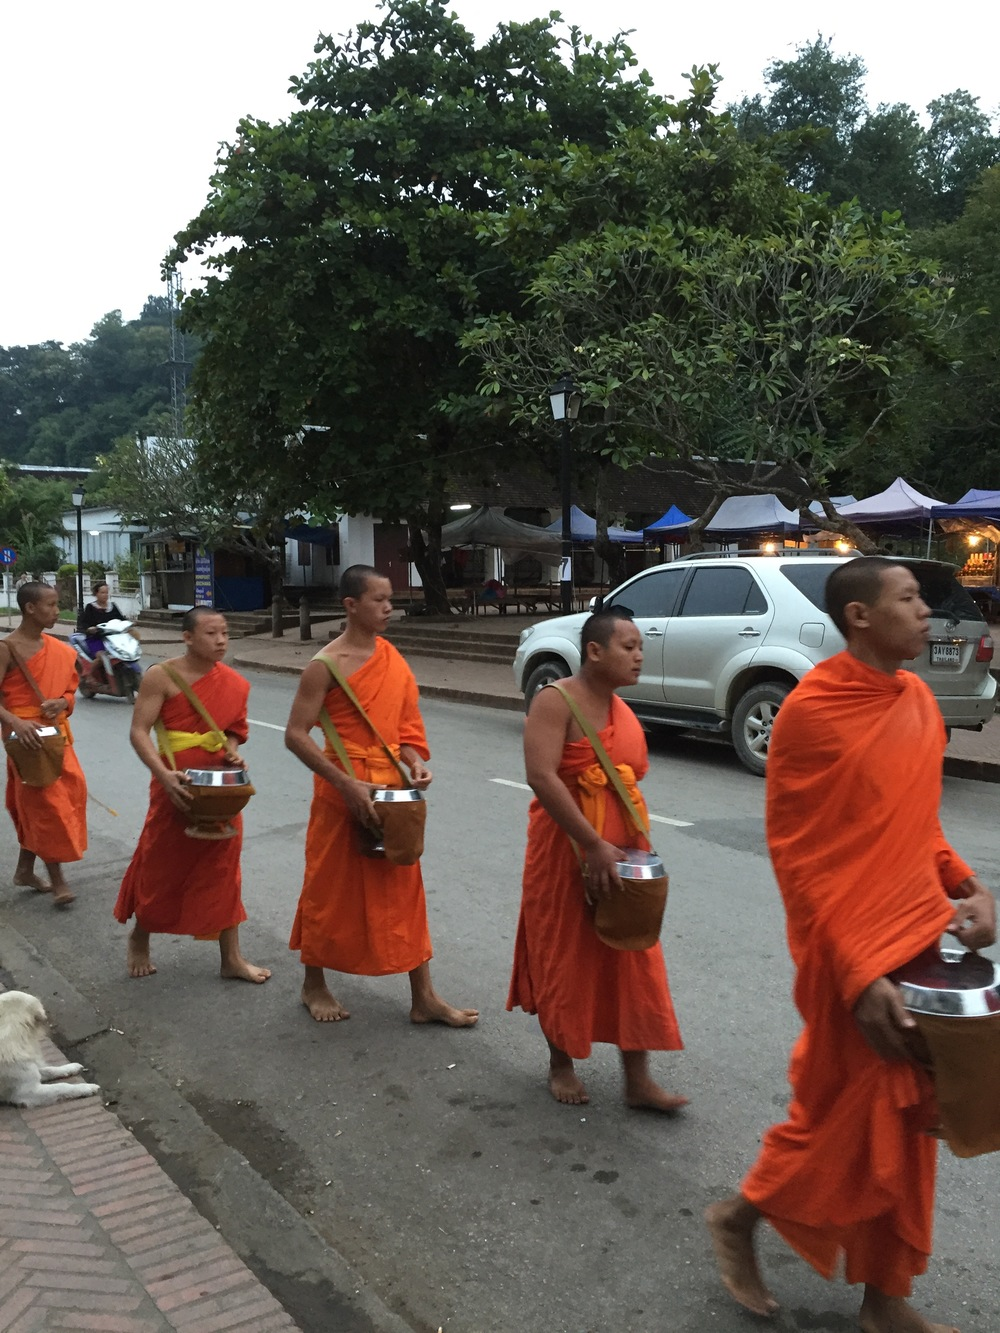 A line of Buddhist monks taking offerings of rice along the streets of Luang Prabang.